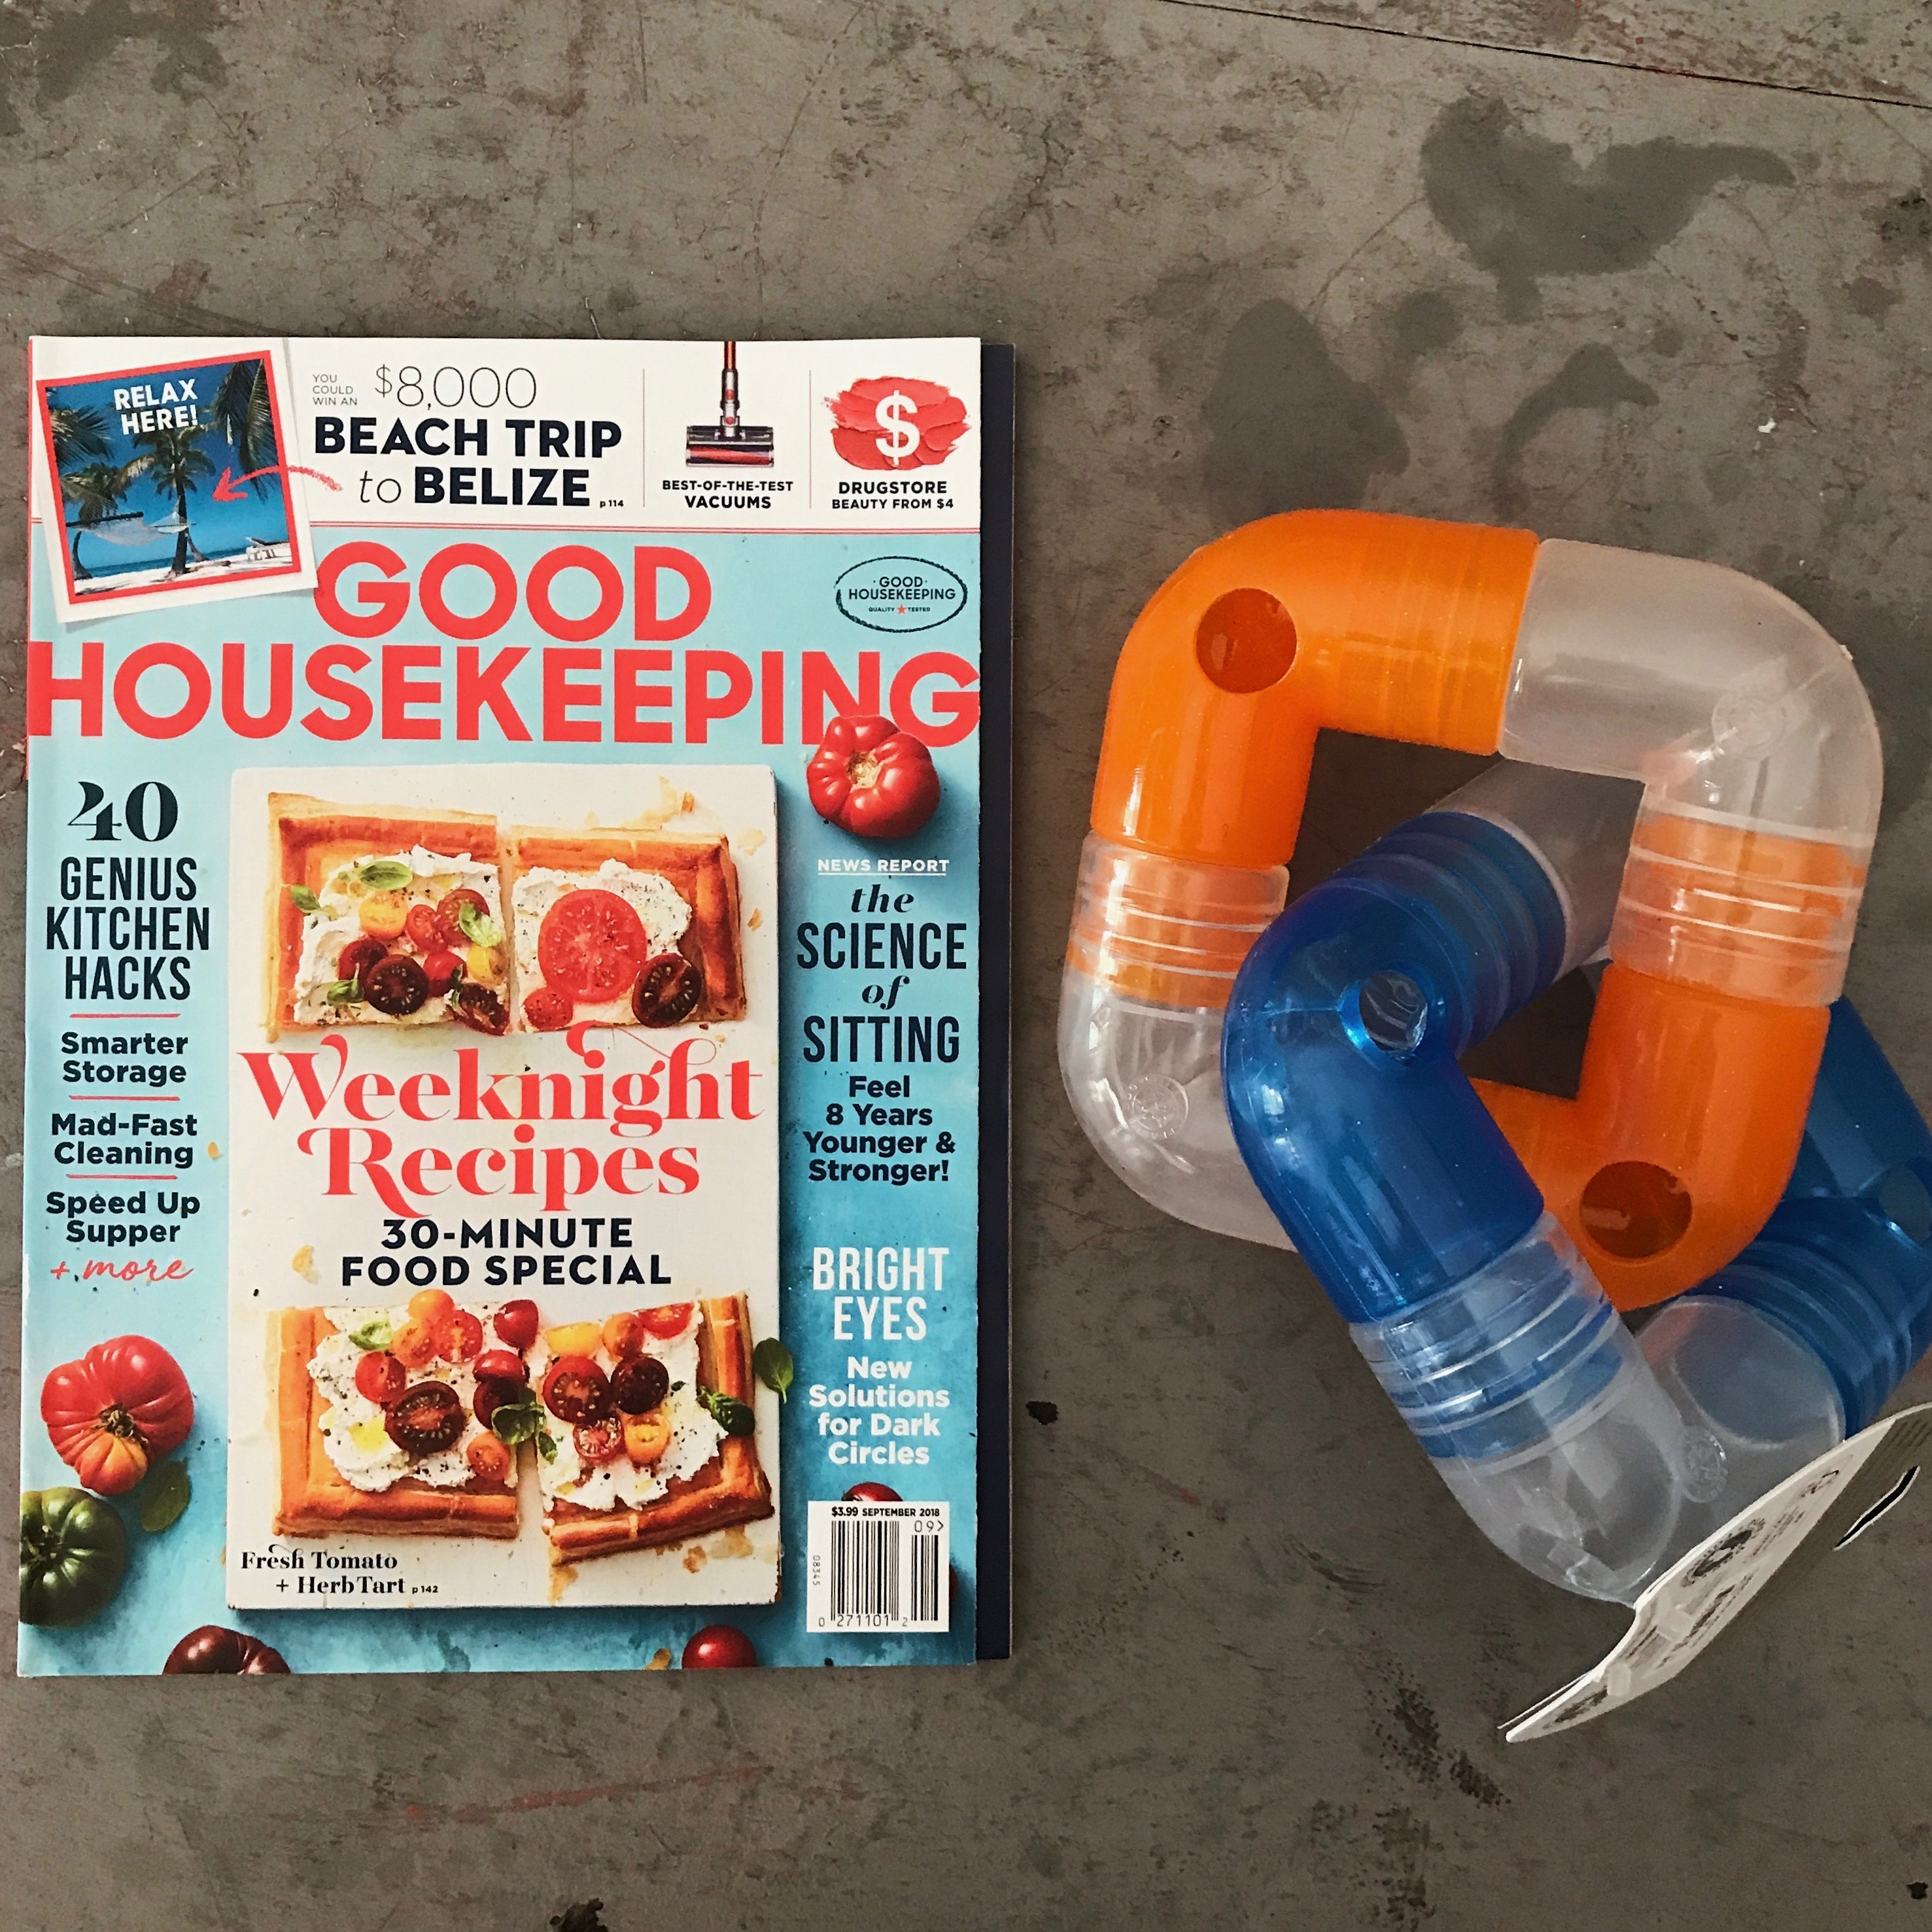 Good Housekeeping Features Planet Dog!!